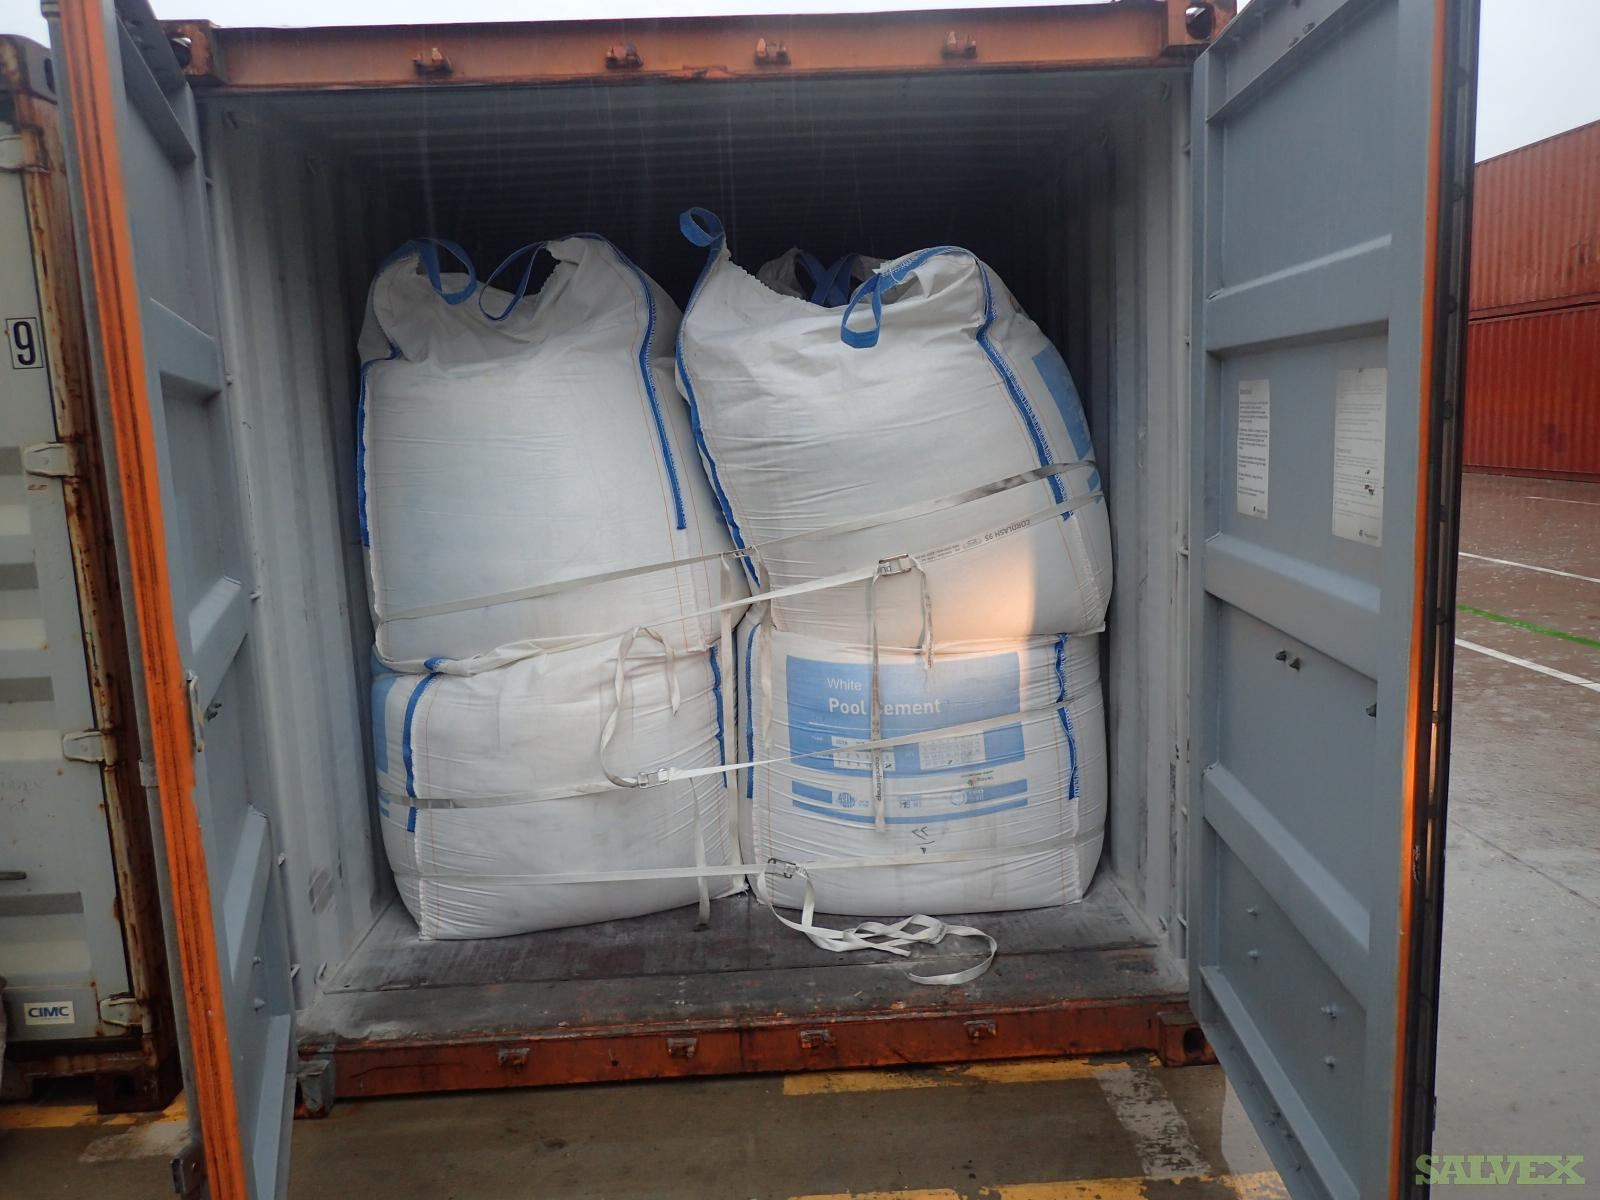 Cement for Pools (16 Bags)